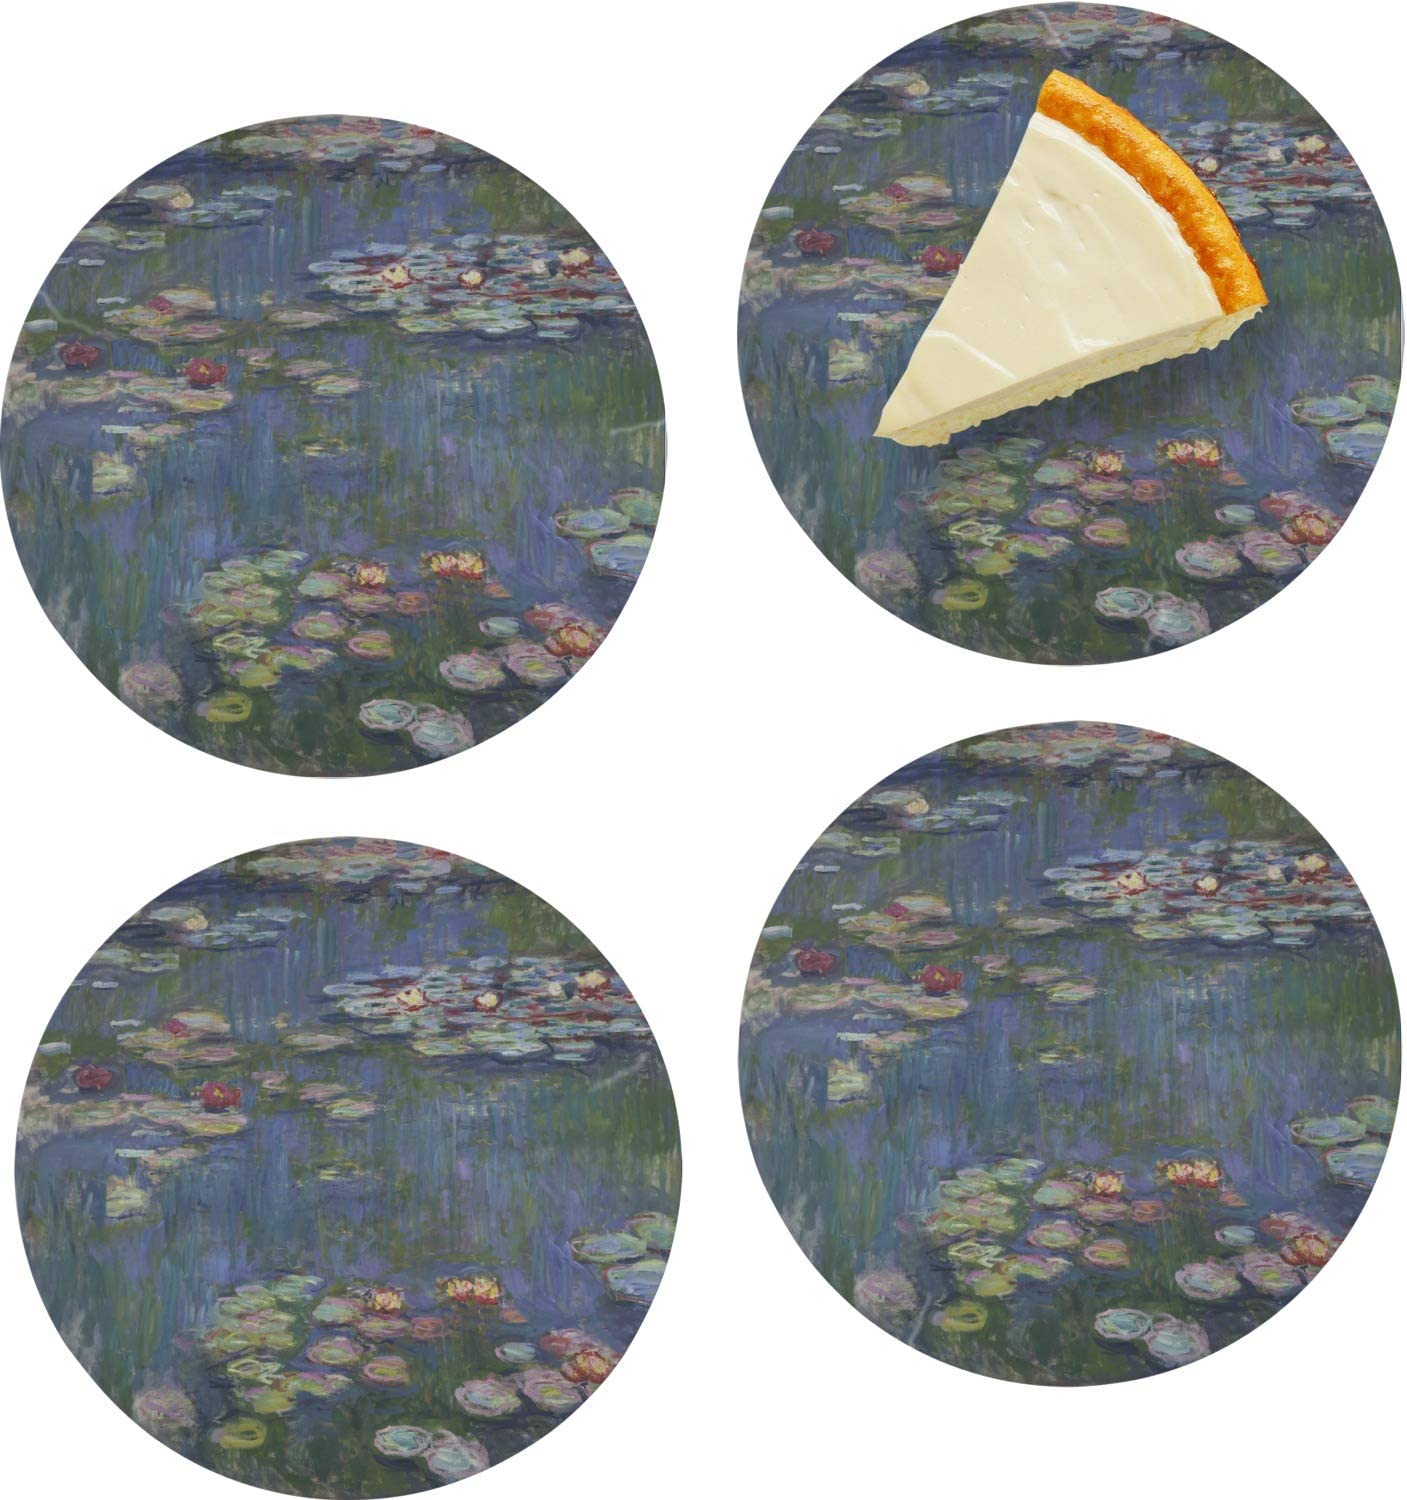 Water Lilies by Claude Monet Set Appetizer Pl of Glass Dessert 4 Popular brand in the Outlet SALE world